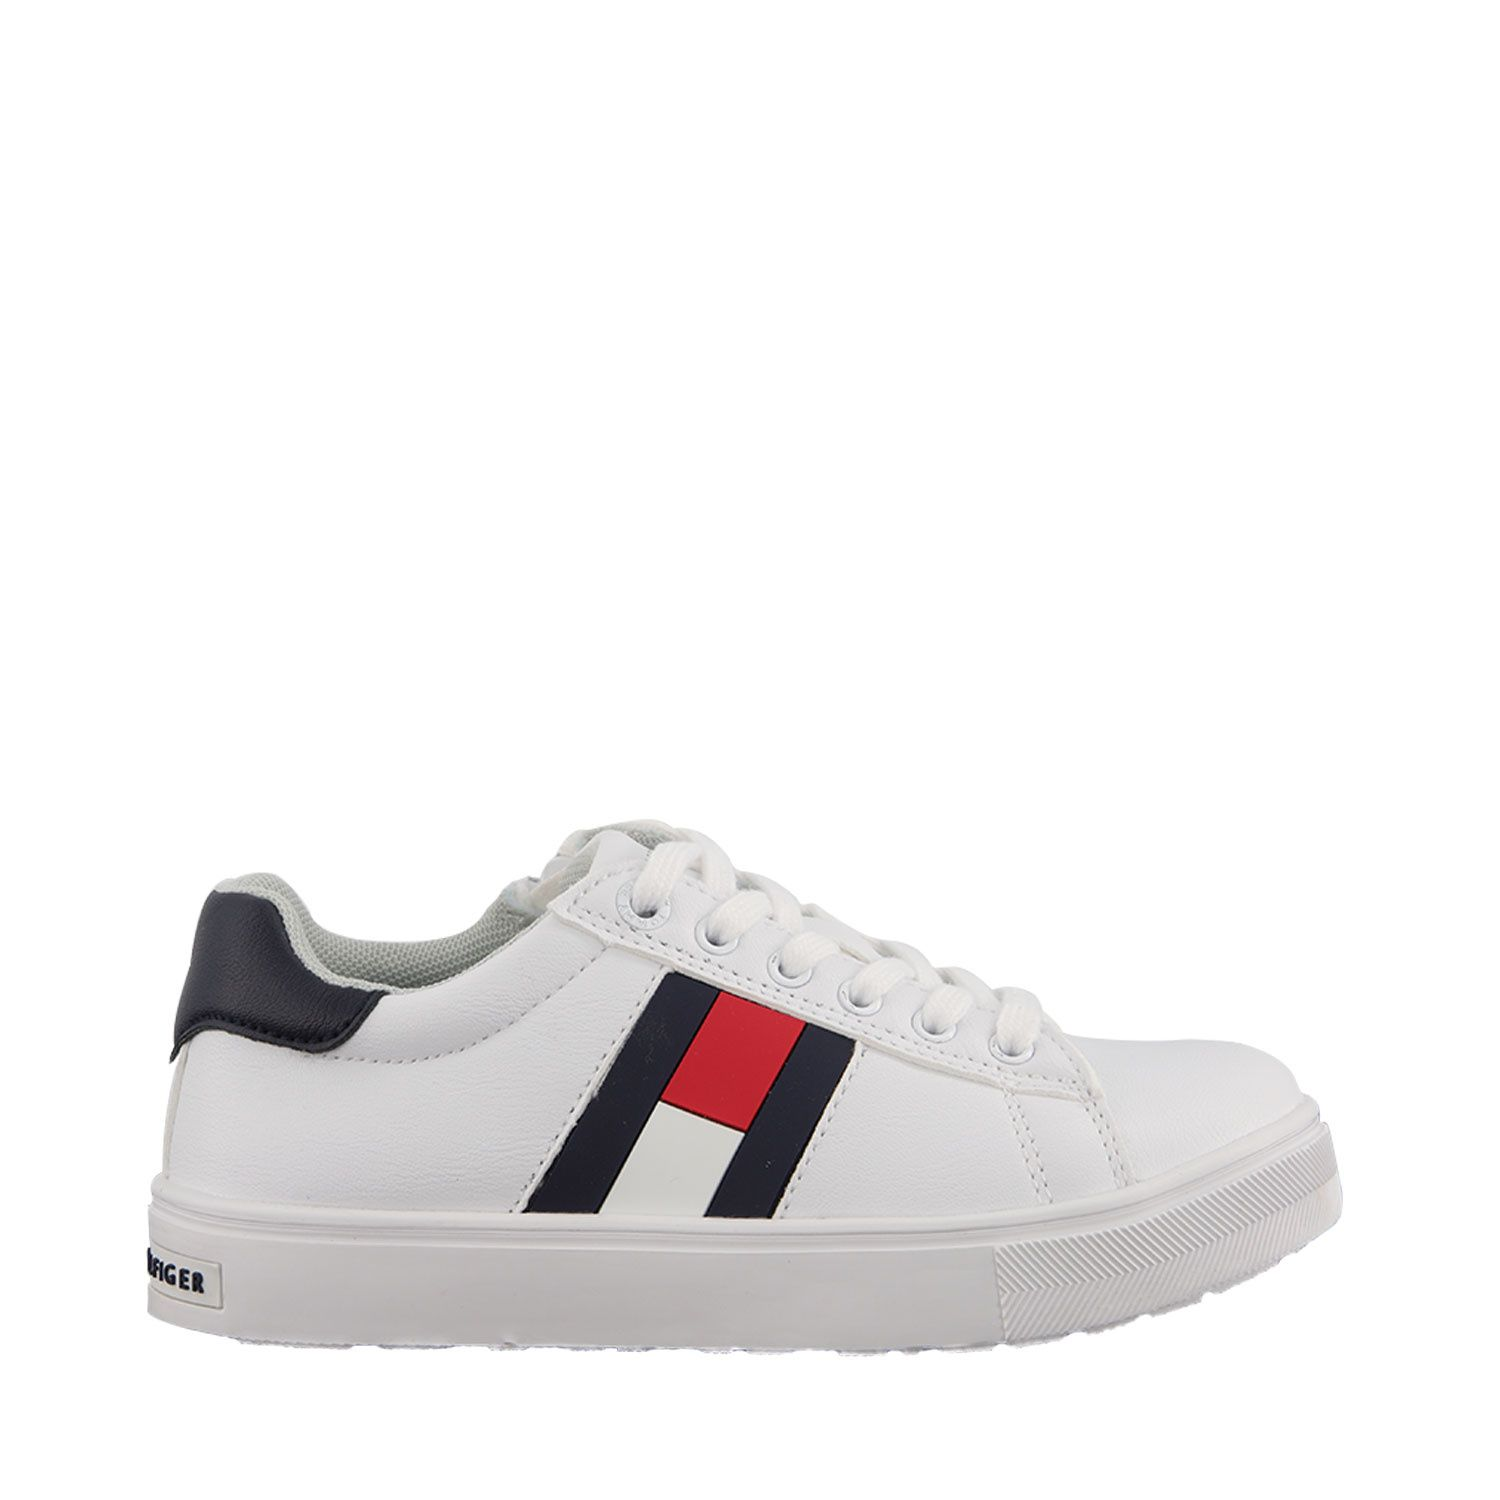 Picture of Tommy Hilfiger 30921 kids sneakers white